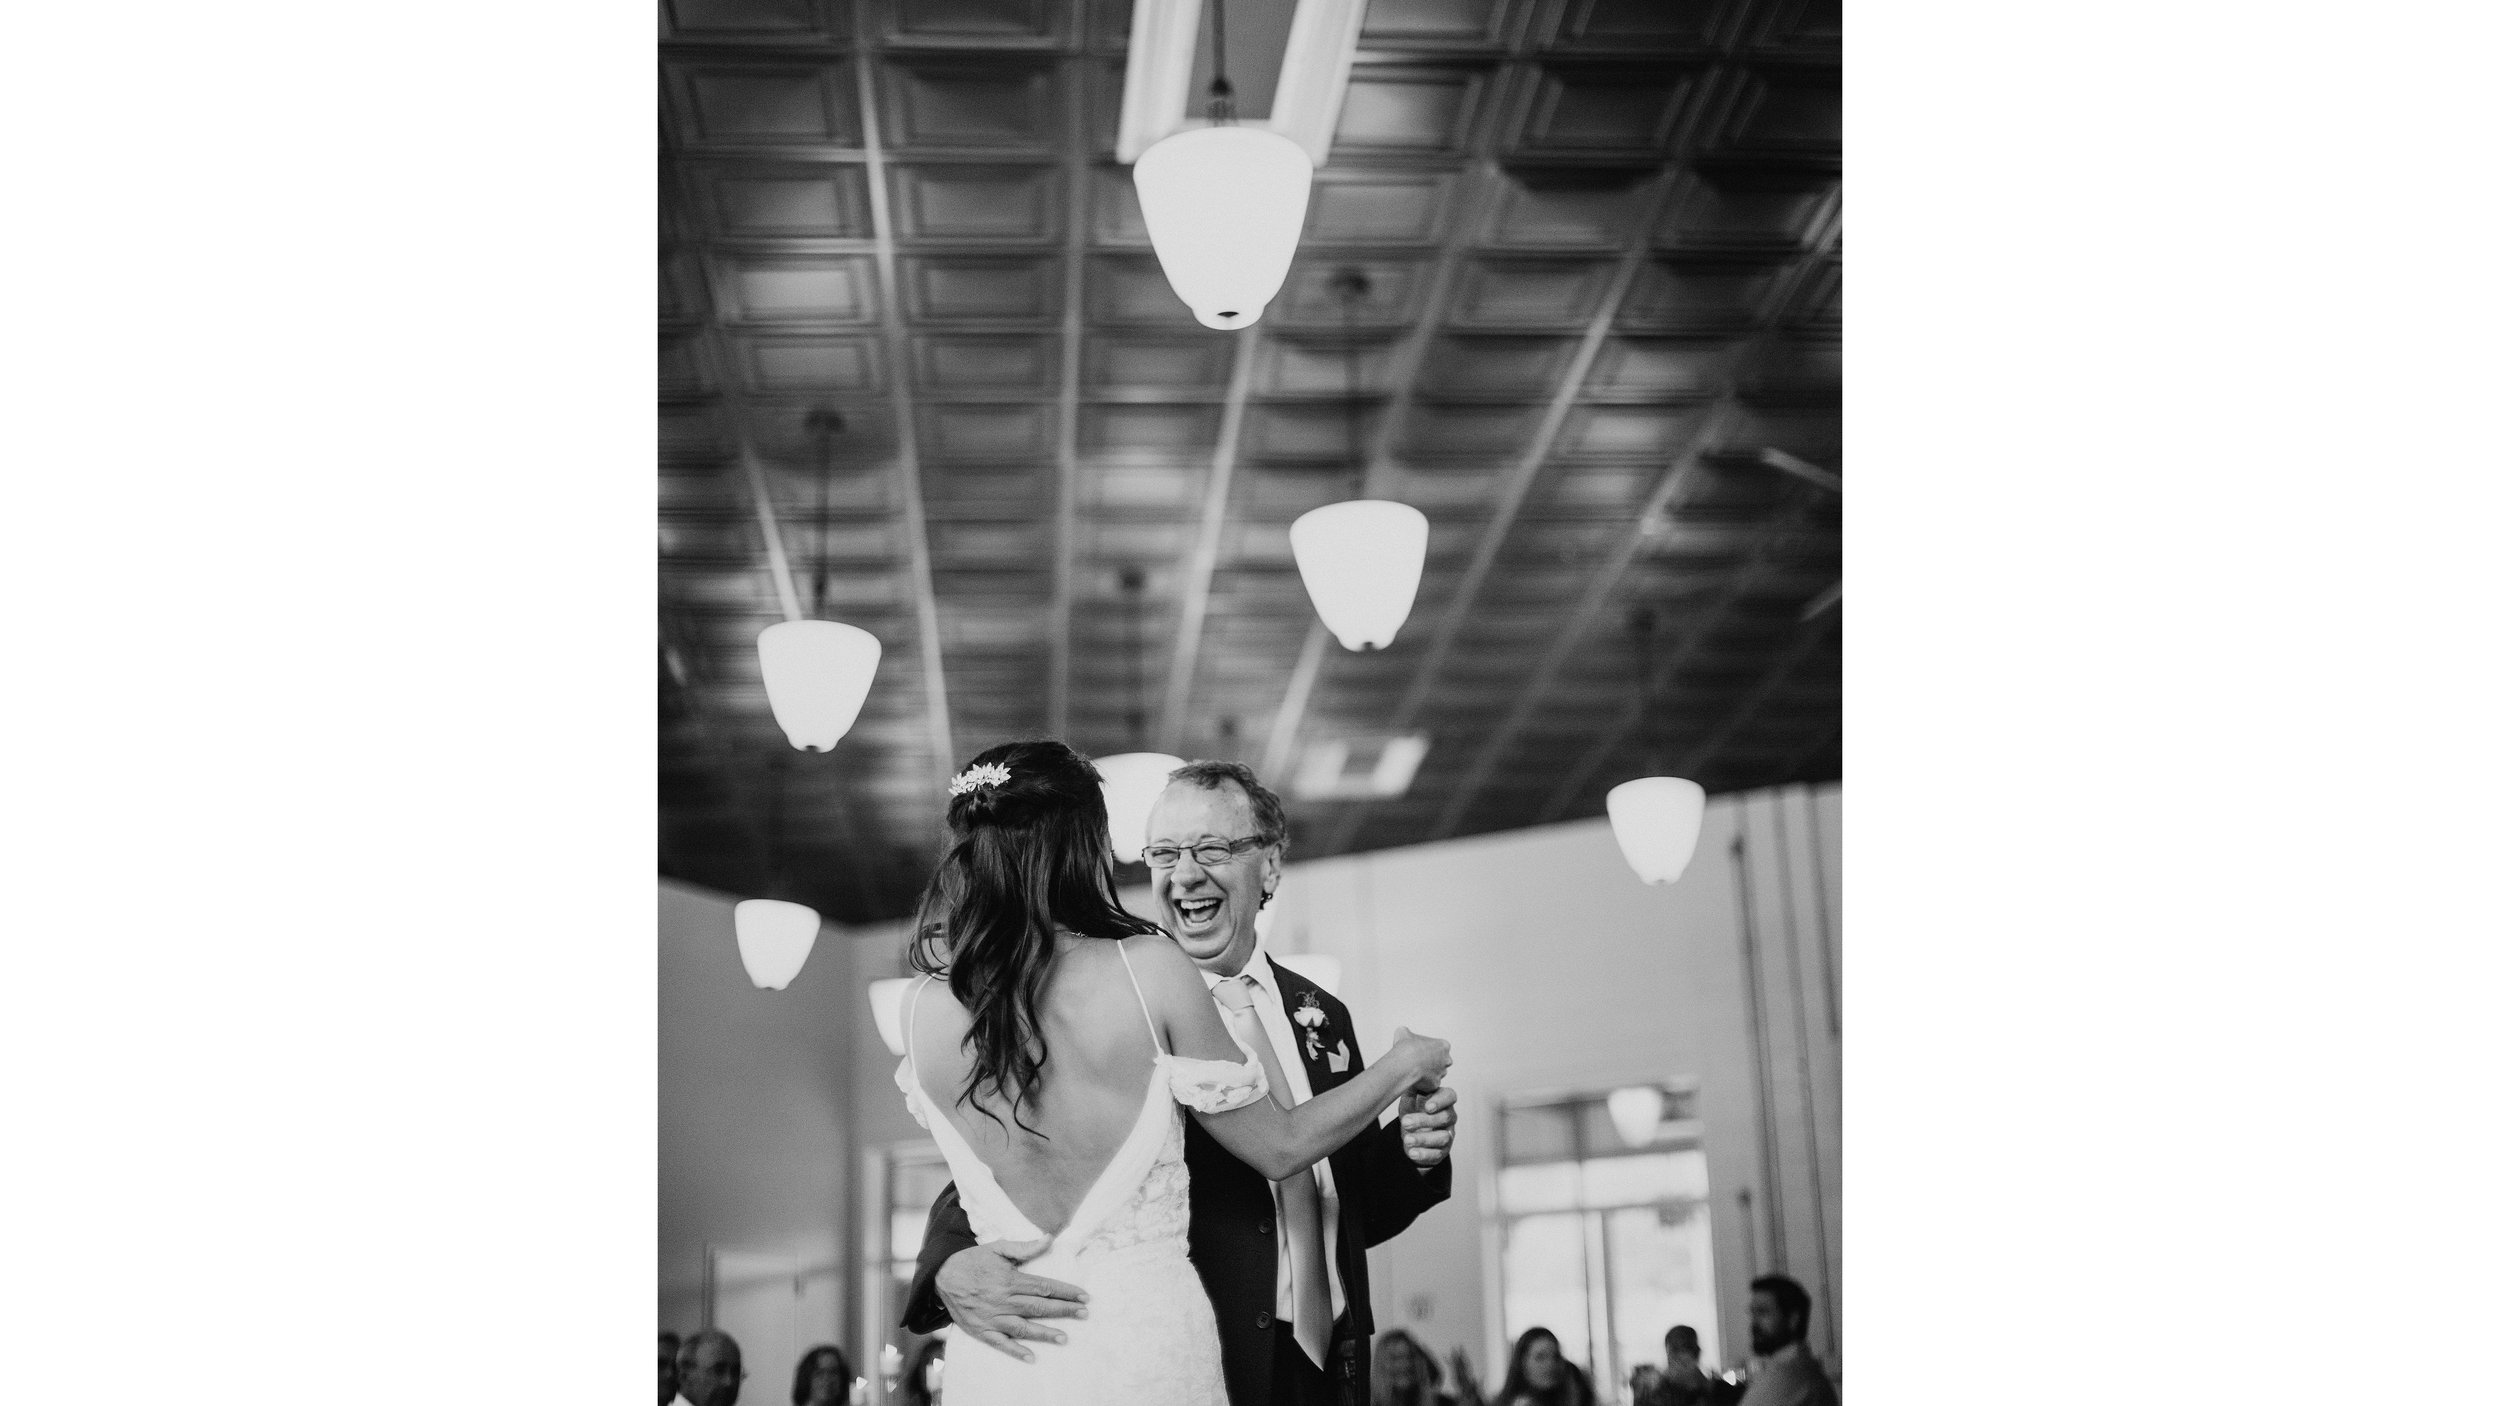 Cure of Ars and Twenty Three Event Space Station Room Wedding_Cinder Block Brewery Wedding_Kindling Wedding Photography_10.JPG